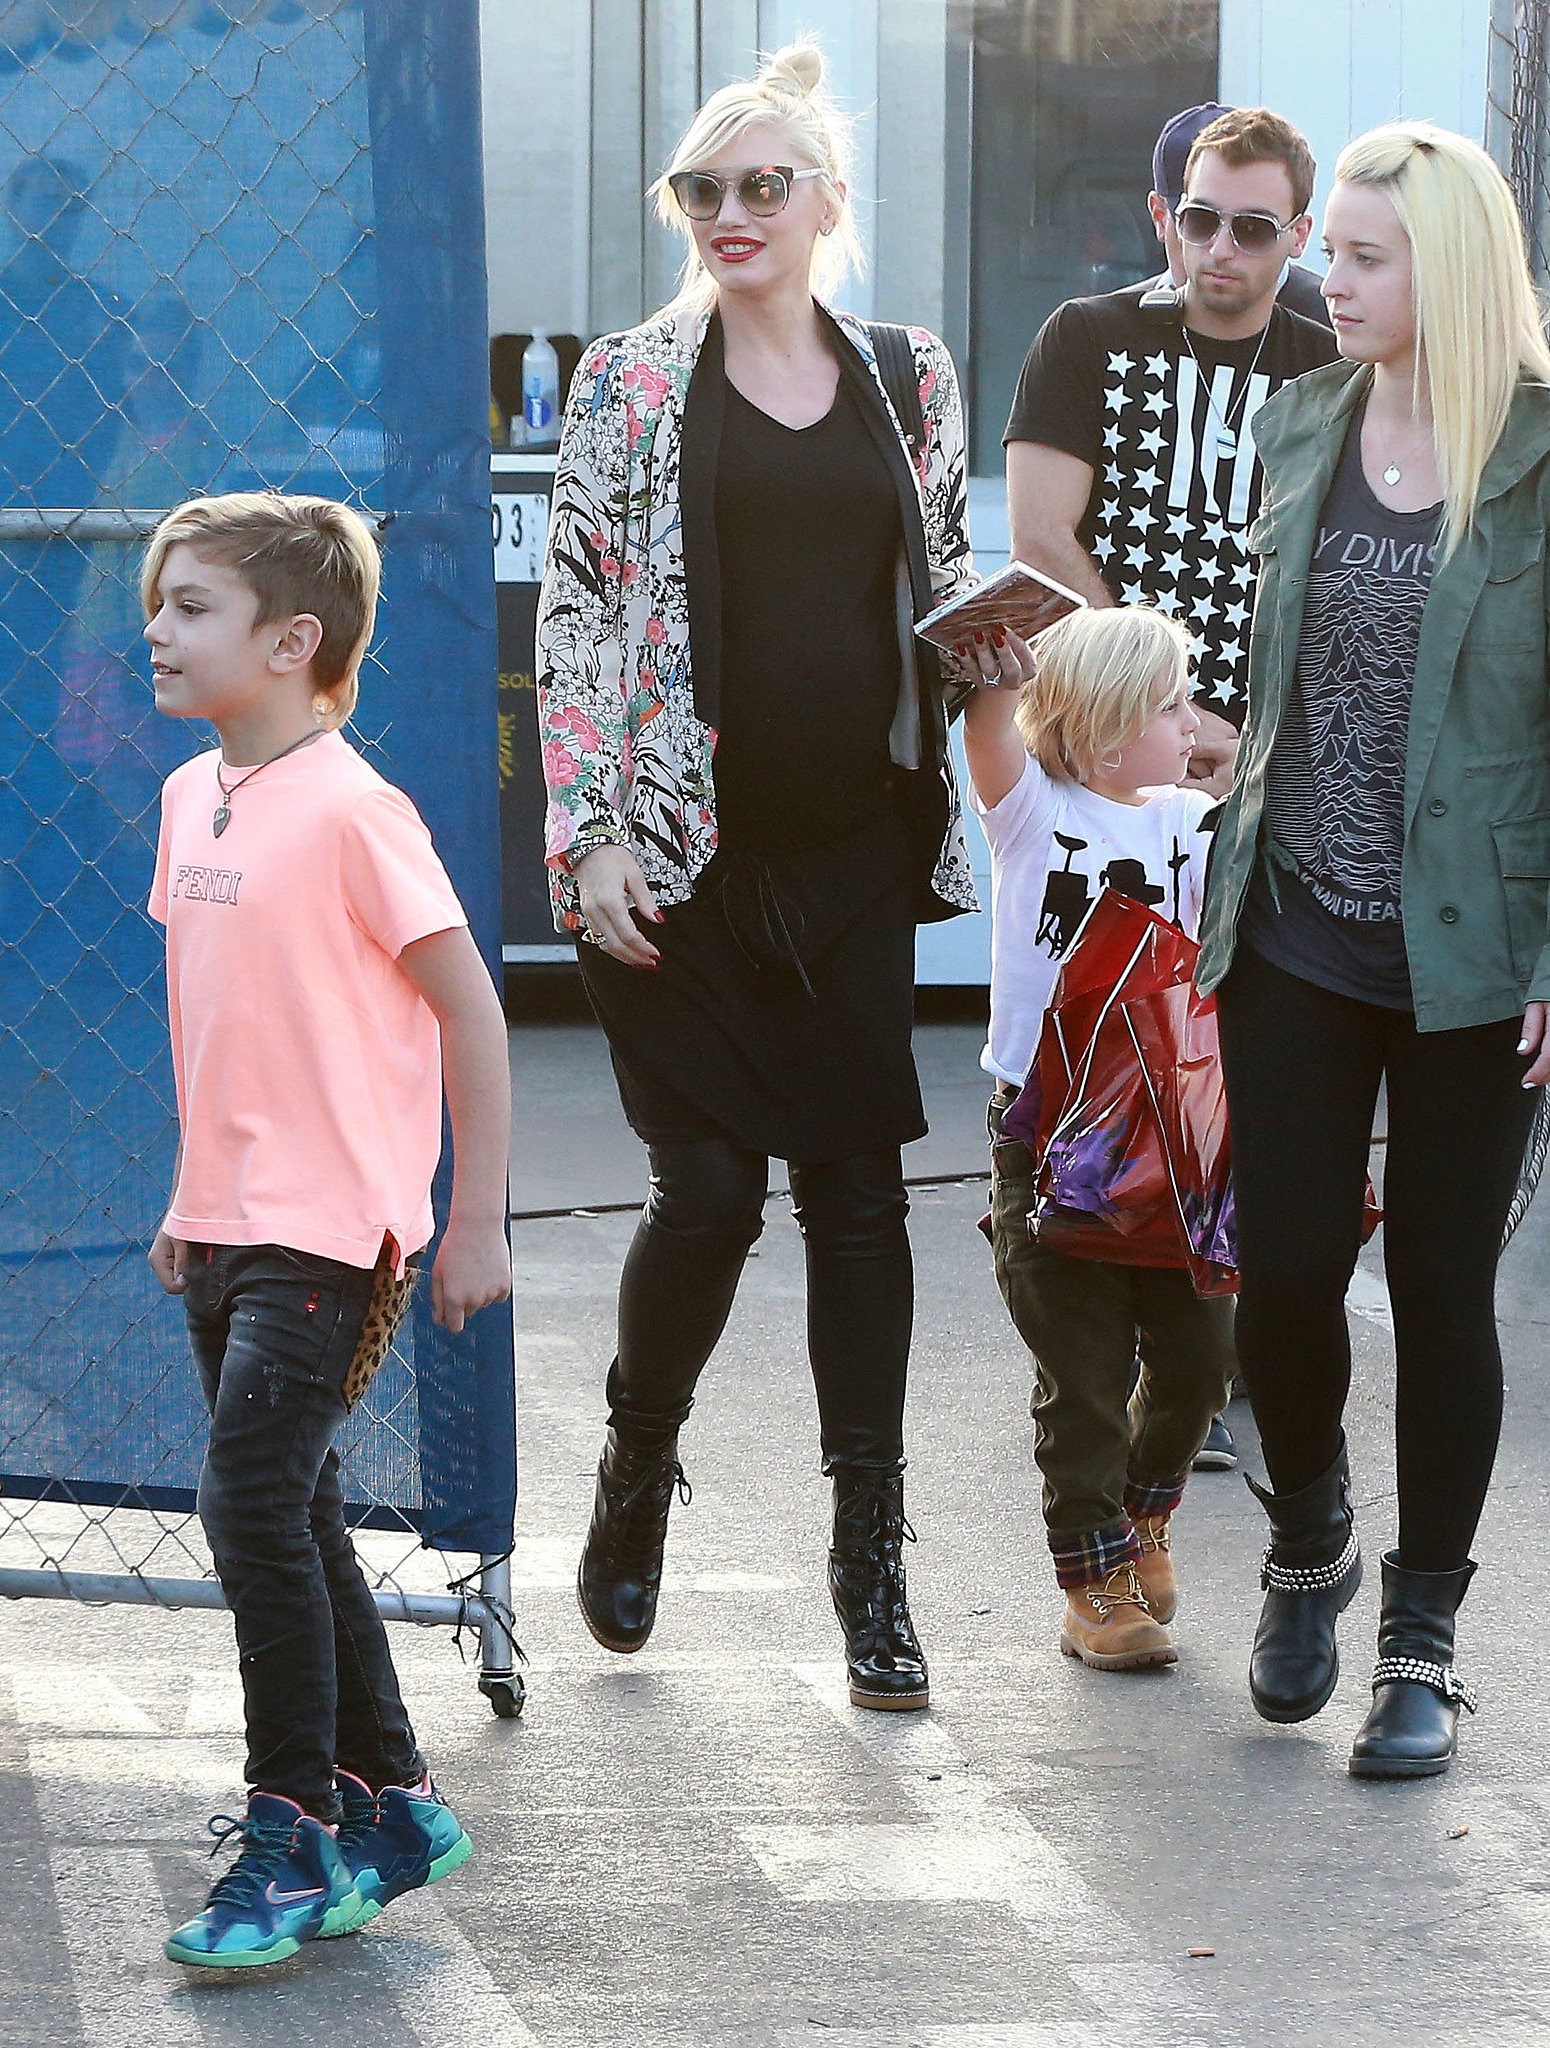 gwen stefani 39 s baby bump was front and center when she and. Black Bedroom Furniture Sets. Home Design Ideas